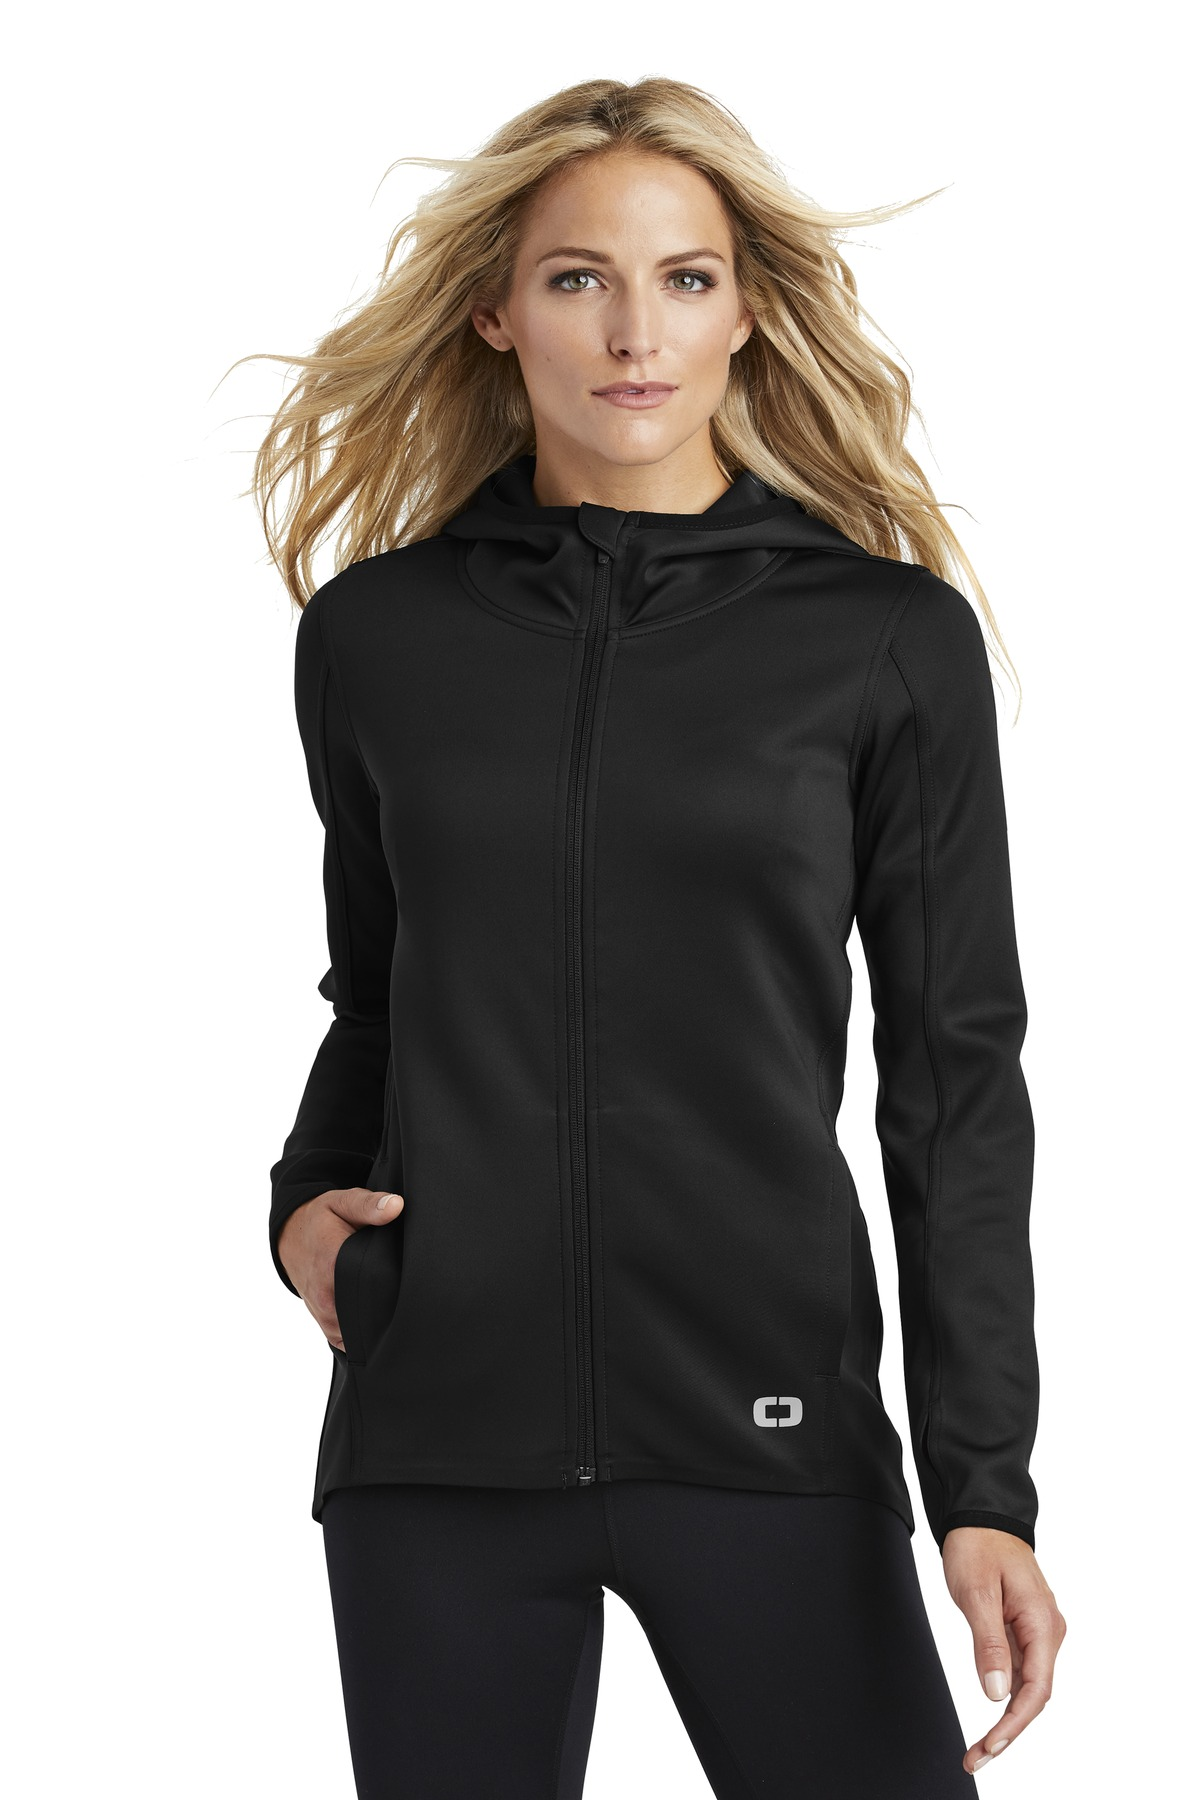 OGIO  ®  ENDURANCE Ladies Stealth Full-Zip Jacket. LOE728 - Blacktop